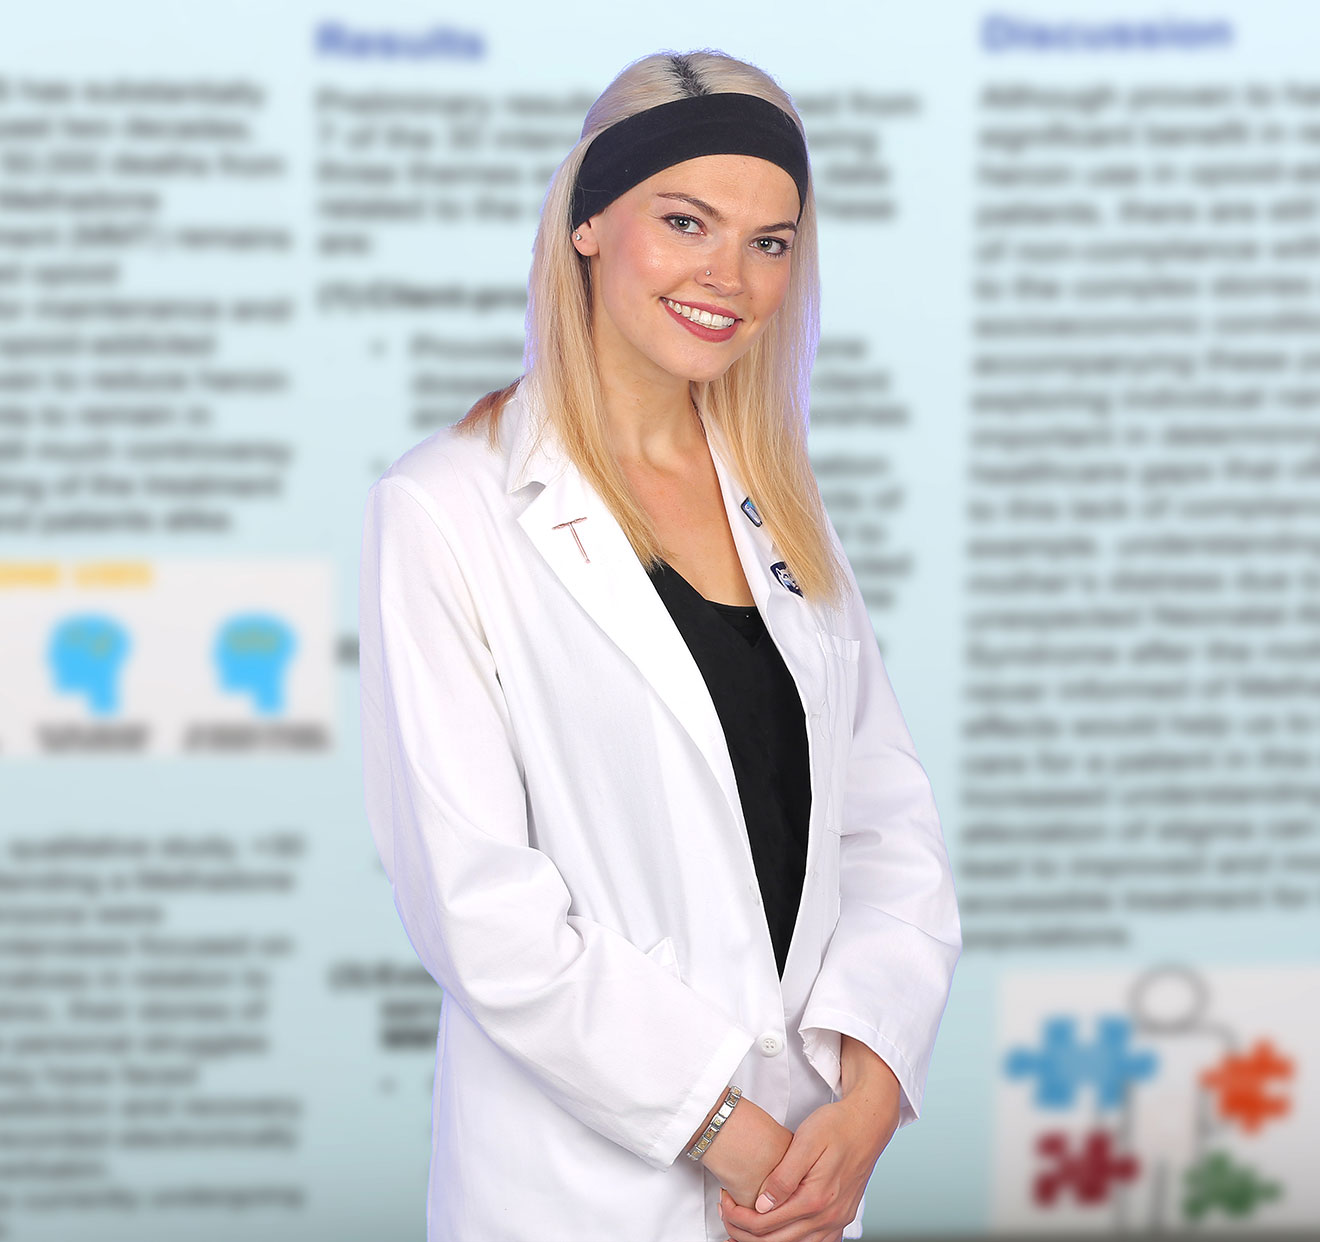 A medical student wearing a medical coat is pictured with an out-of-focus scholarly poster of hers visible in the background.